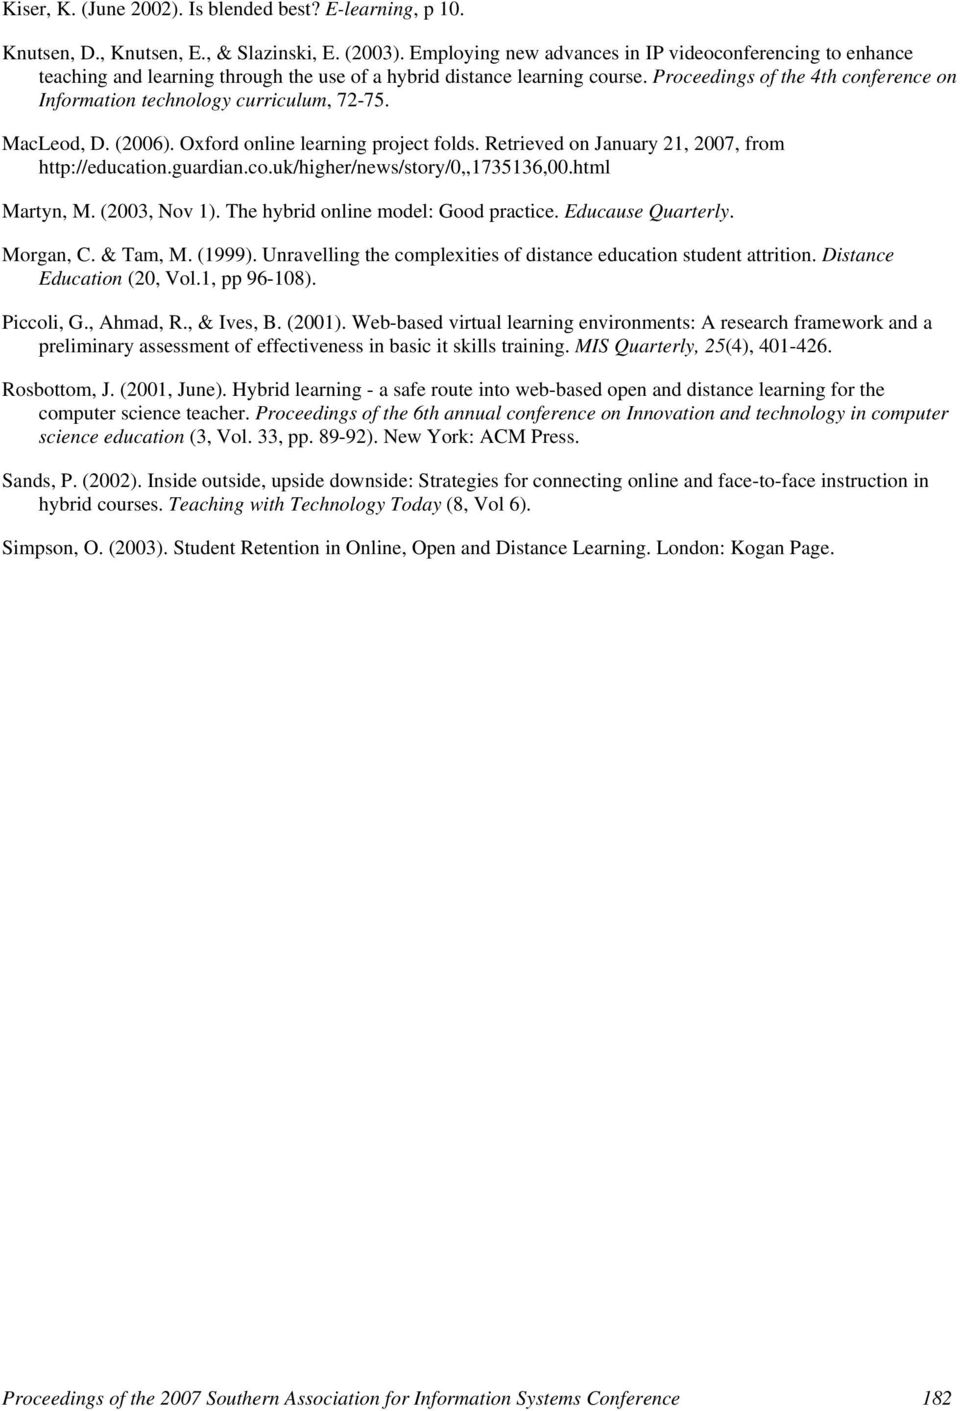 Proceedings of the 4th conference on Information technology curriculum, 72-75. MacLeod, D. (2006). Oxford online learning project folds. Retrieved on January 21, 2007, from http://education.guardian.